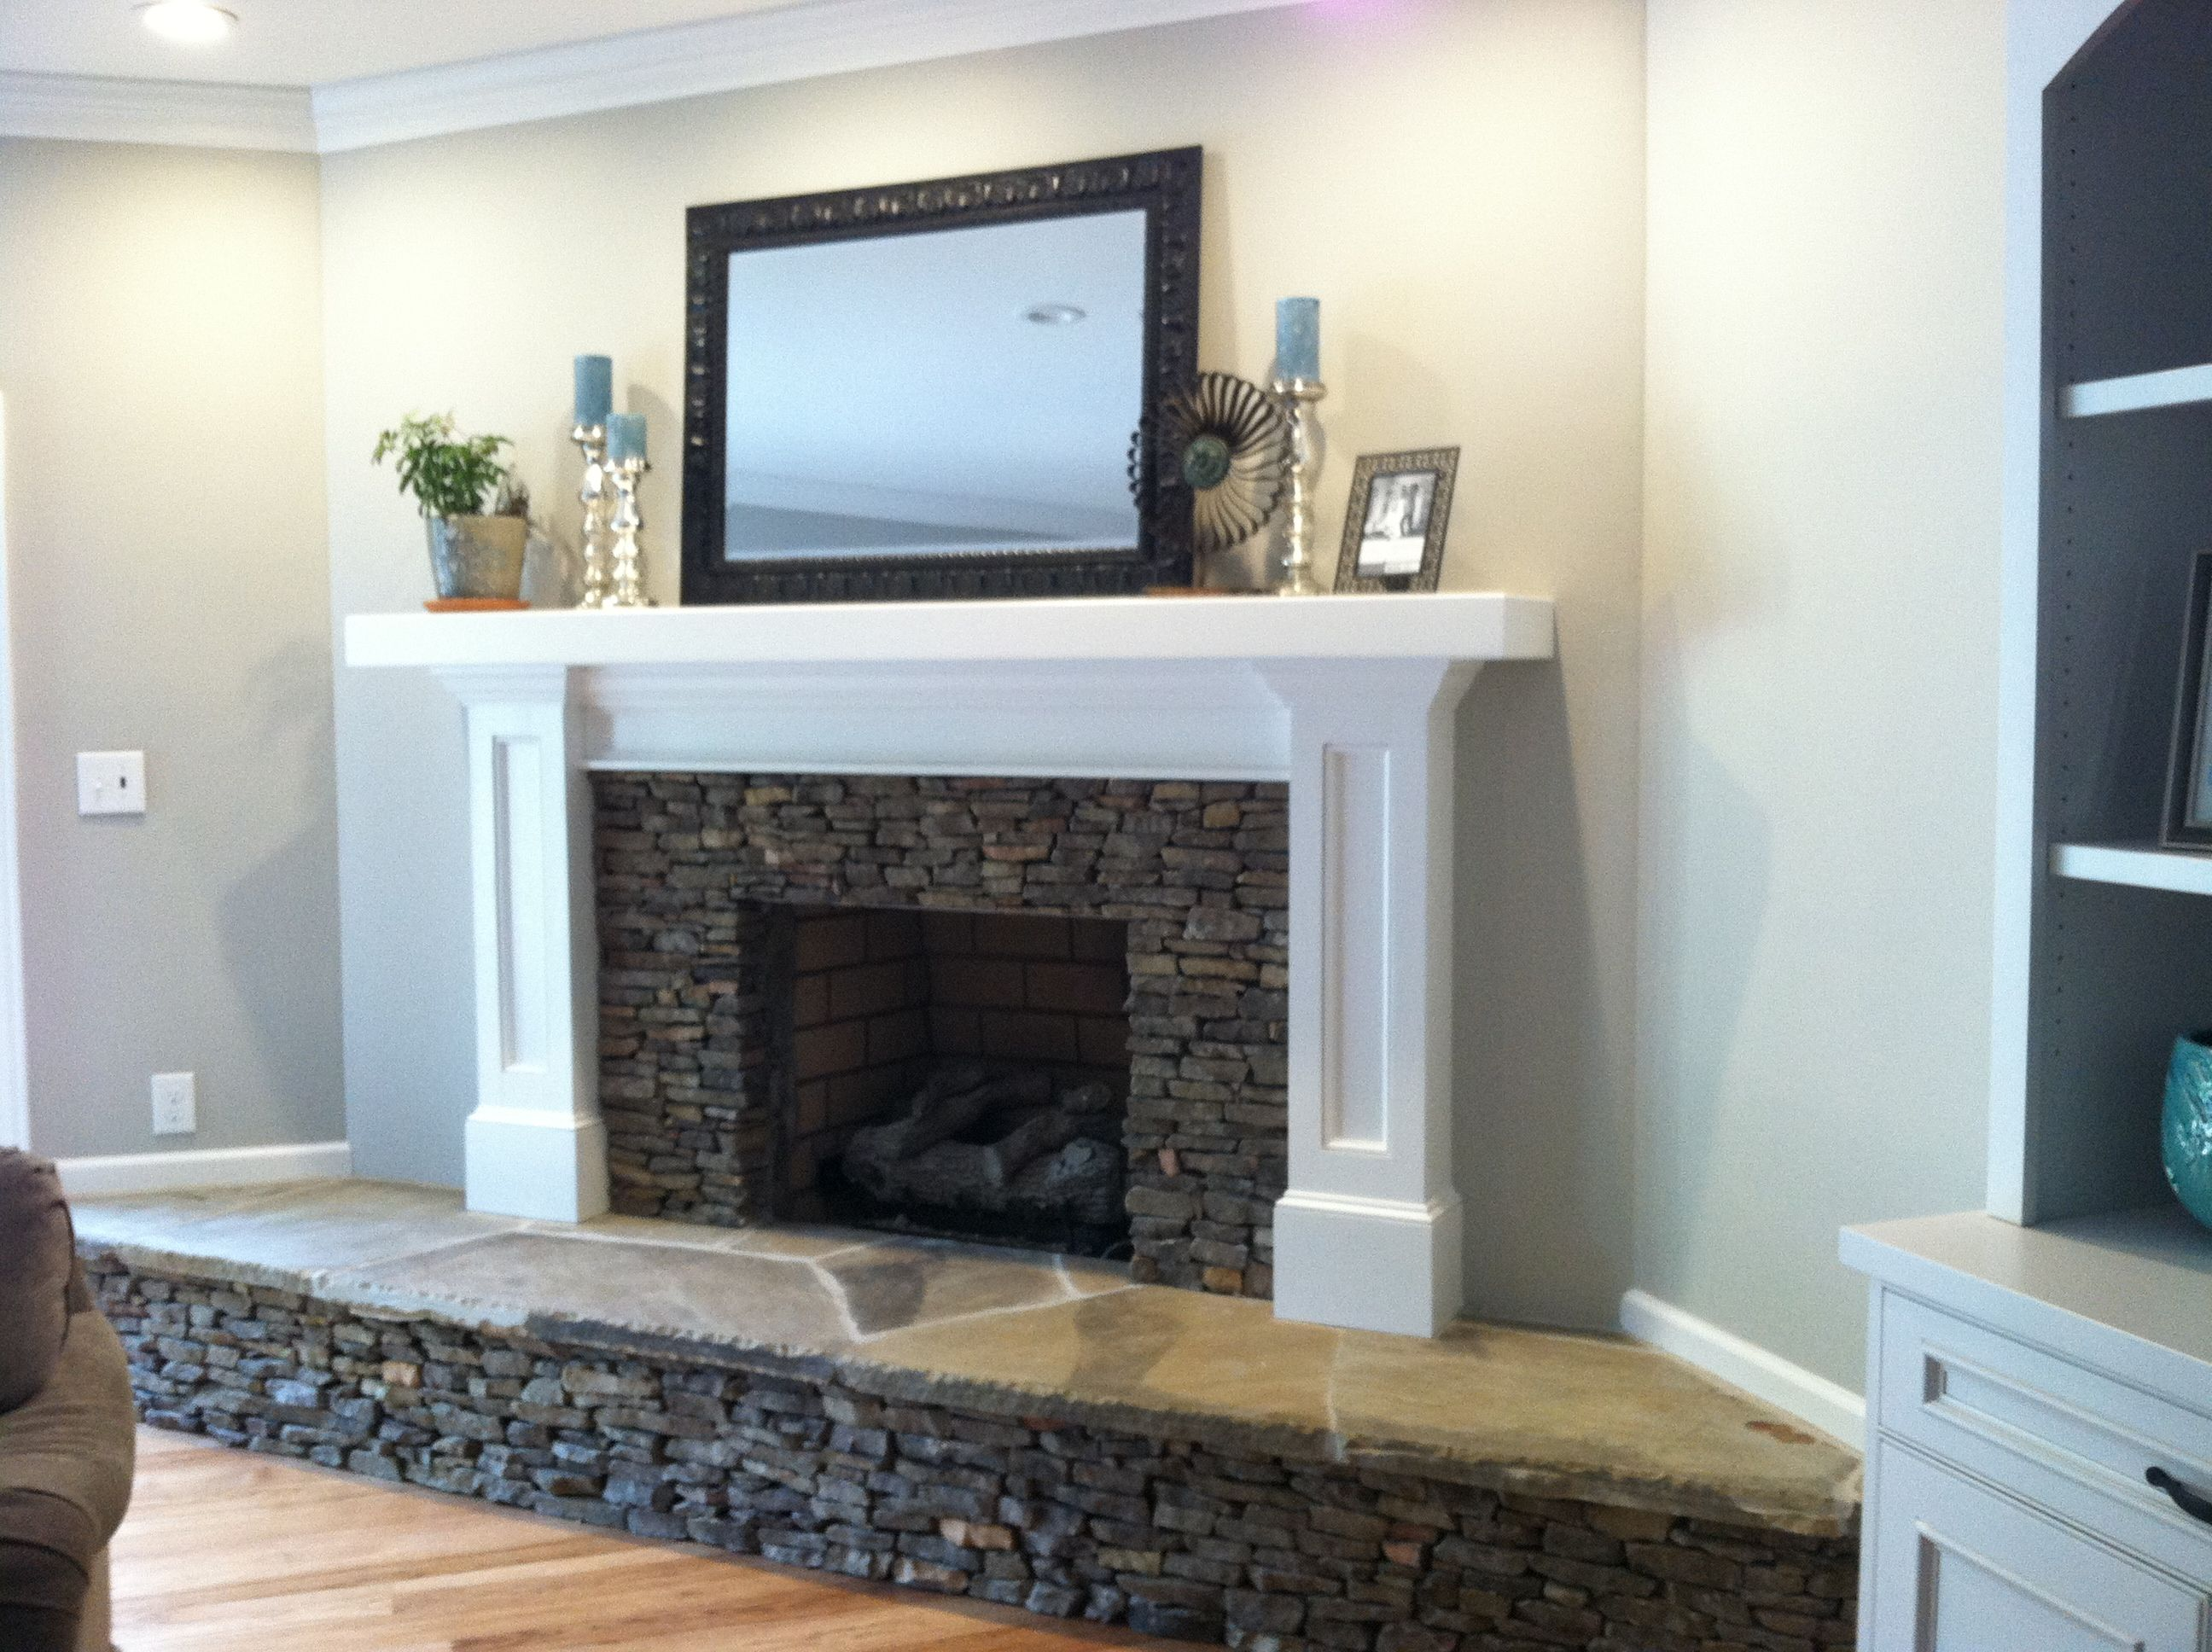 brick wall and fireplace covered with sheetrock and